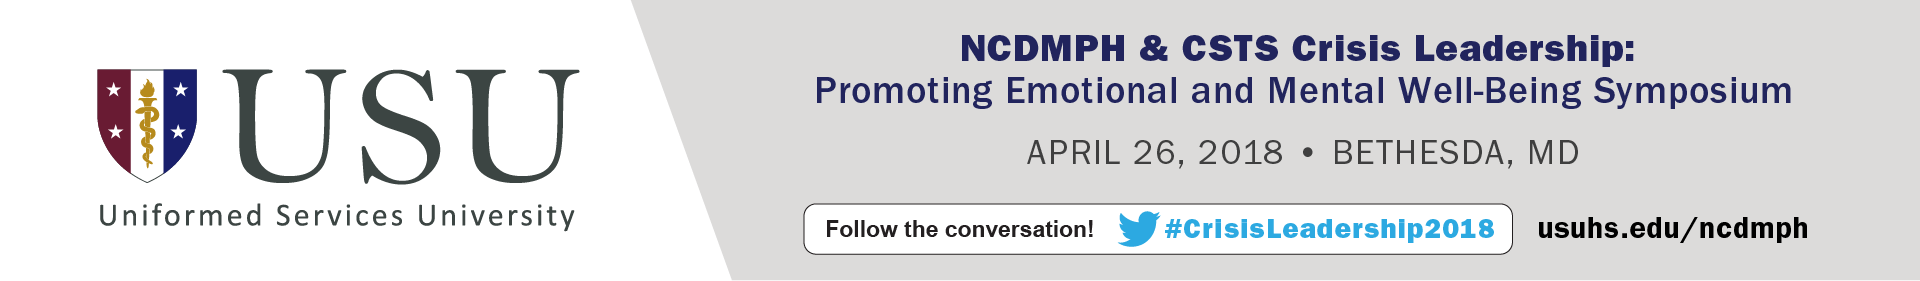 NCDMPH & CSTS Crisis Leadership: Promoting Emotional and Mental Well-Being Symposium